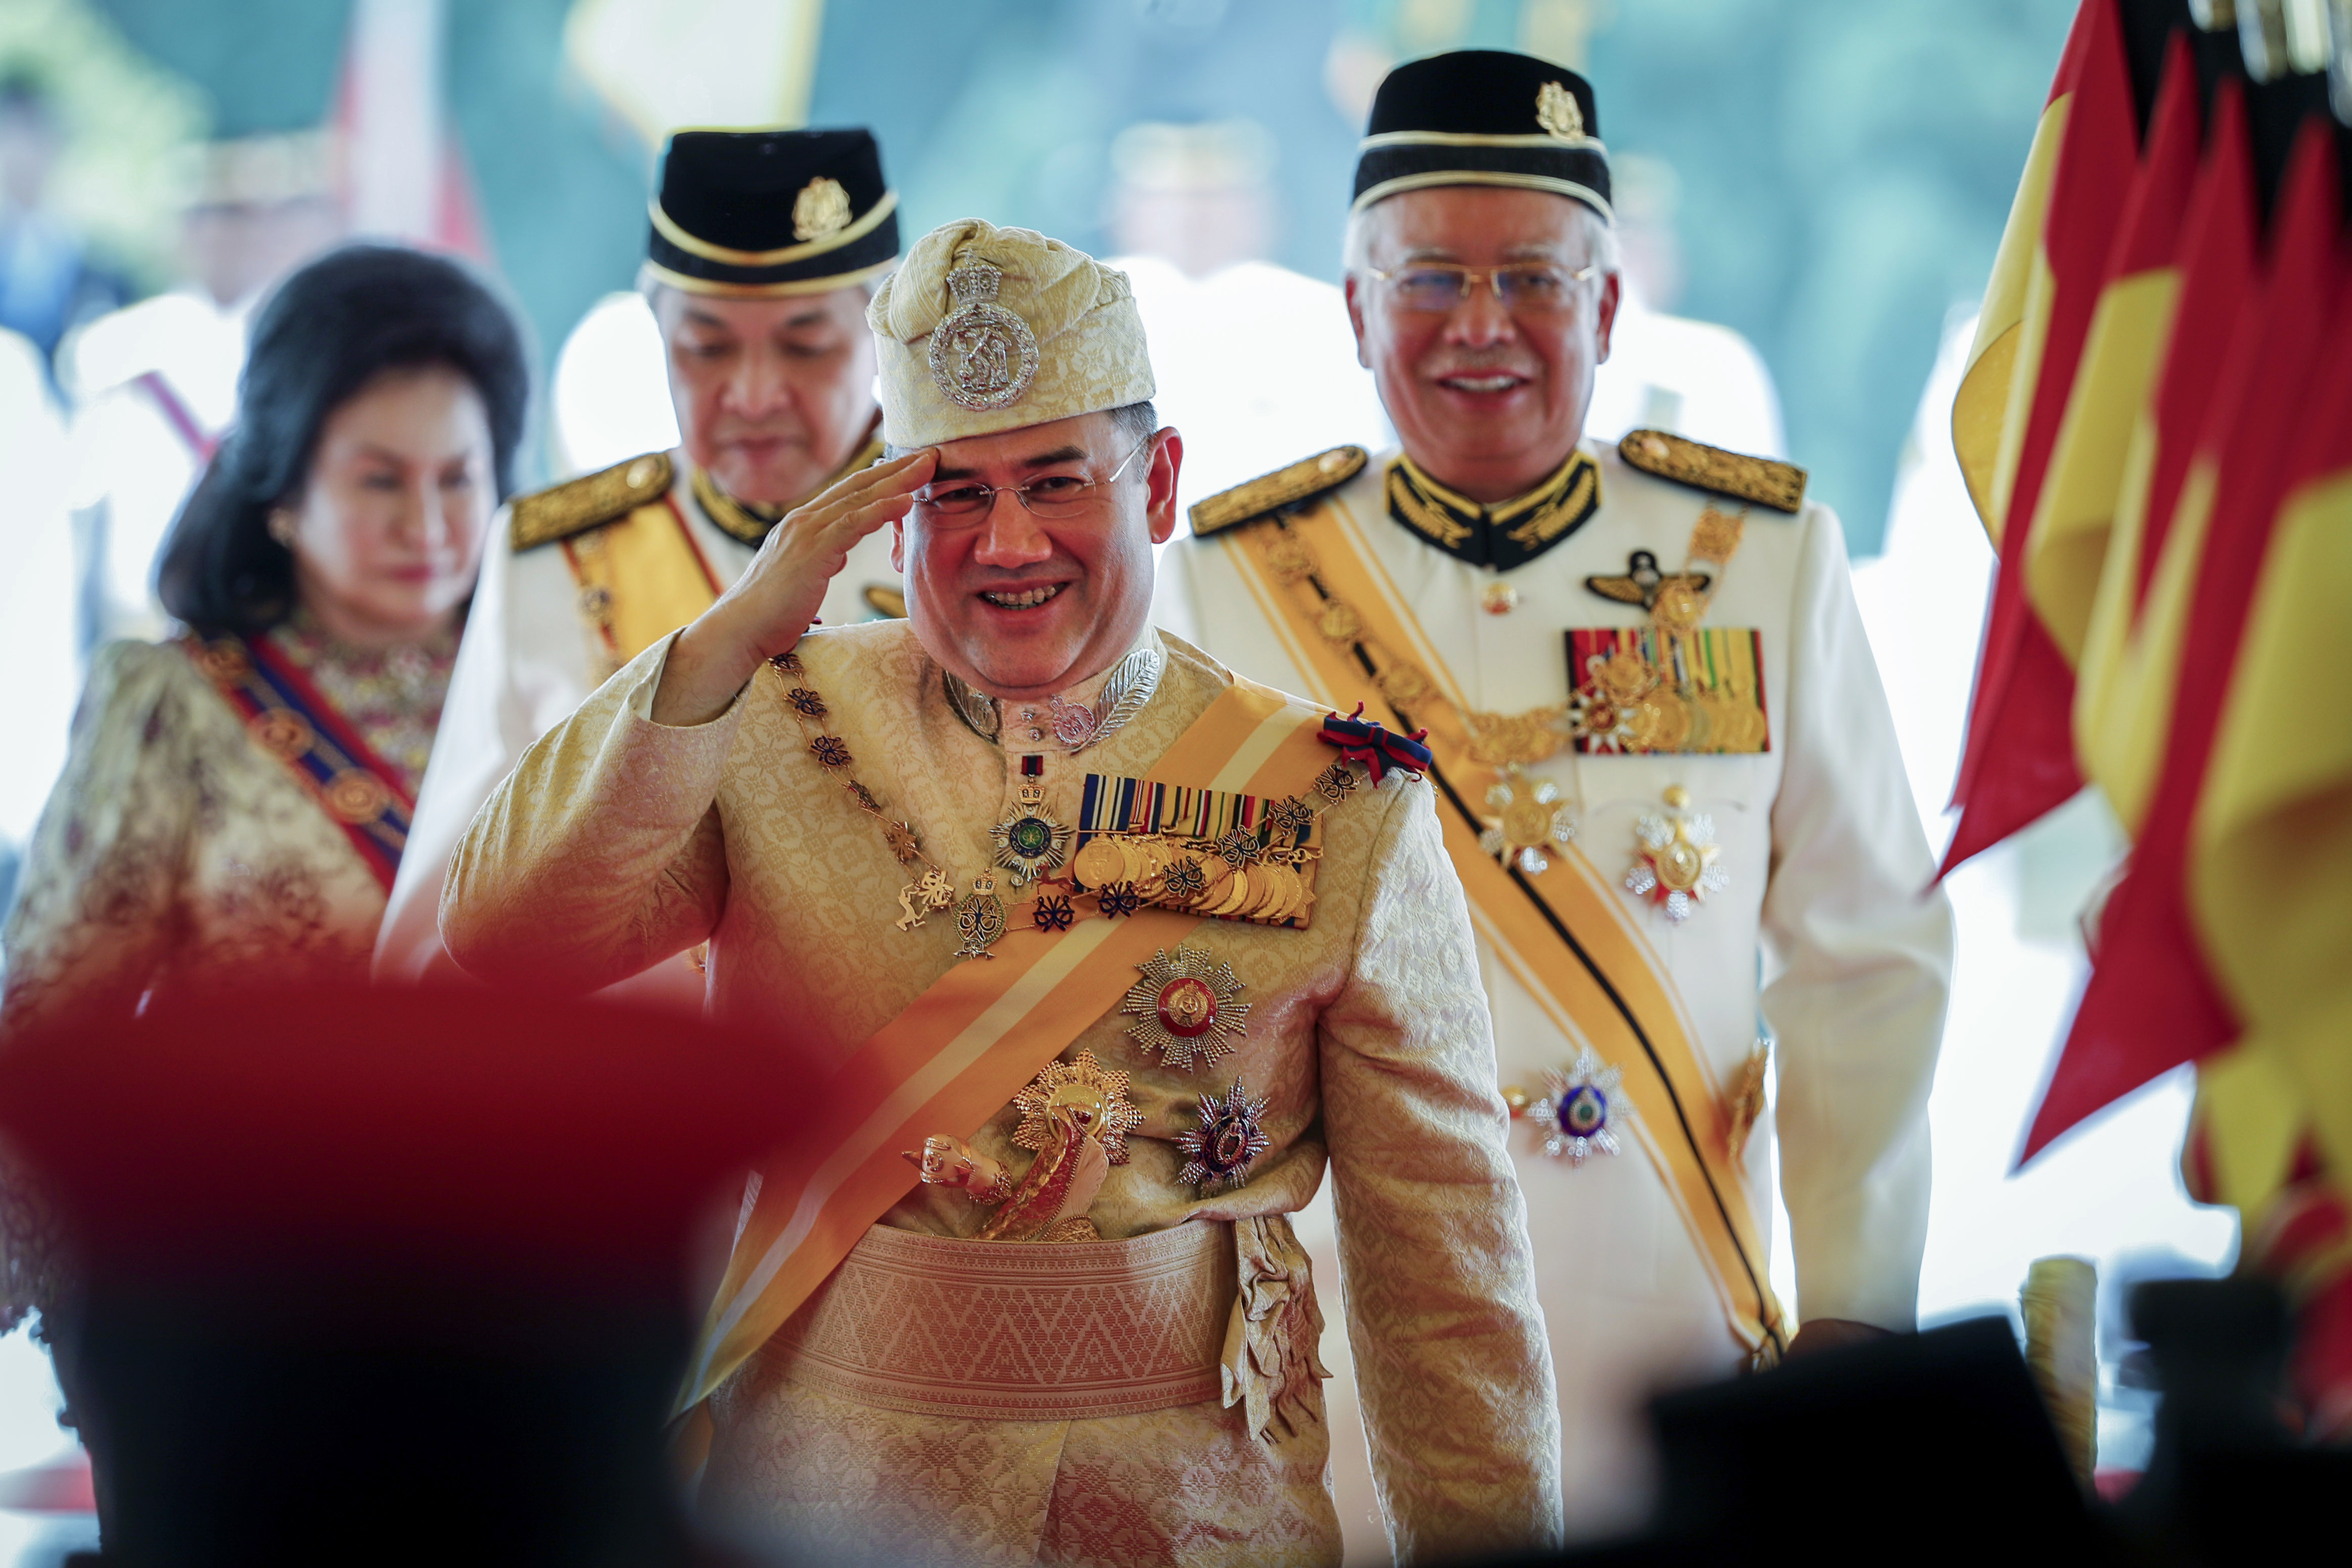 Sultan Muhammad V, center, salutes after his welcome ceremony as he walks with Malaysian Prime Minister Najib Razak, right, at the Parliament House in Kuala Lumpur, Malaysia, Tuesday, Dec. 13, 2016. Sultan Muhammad V of Kelantan will serve a five-year term as King of Malaysia from Tuesday. (AP Photo/Vincent Thian)